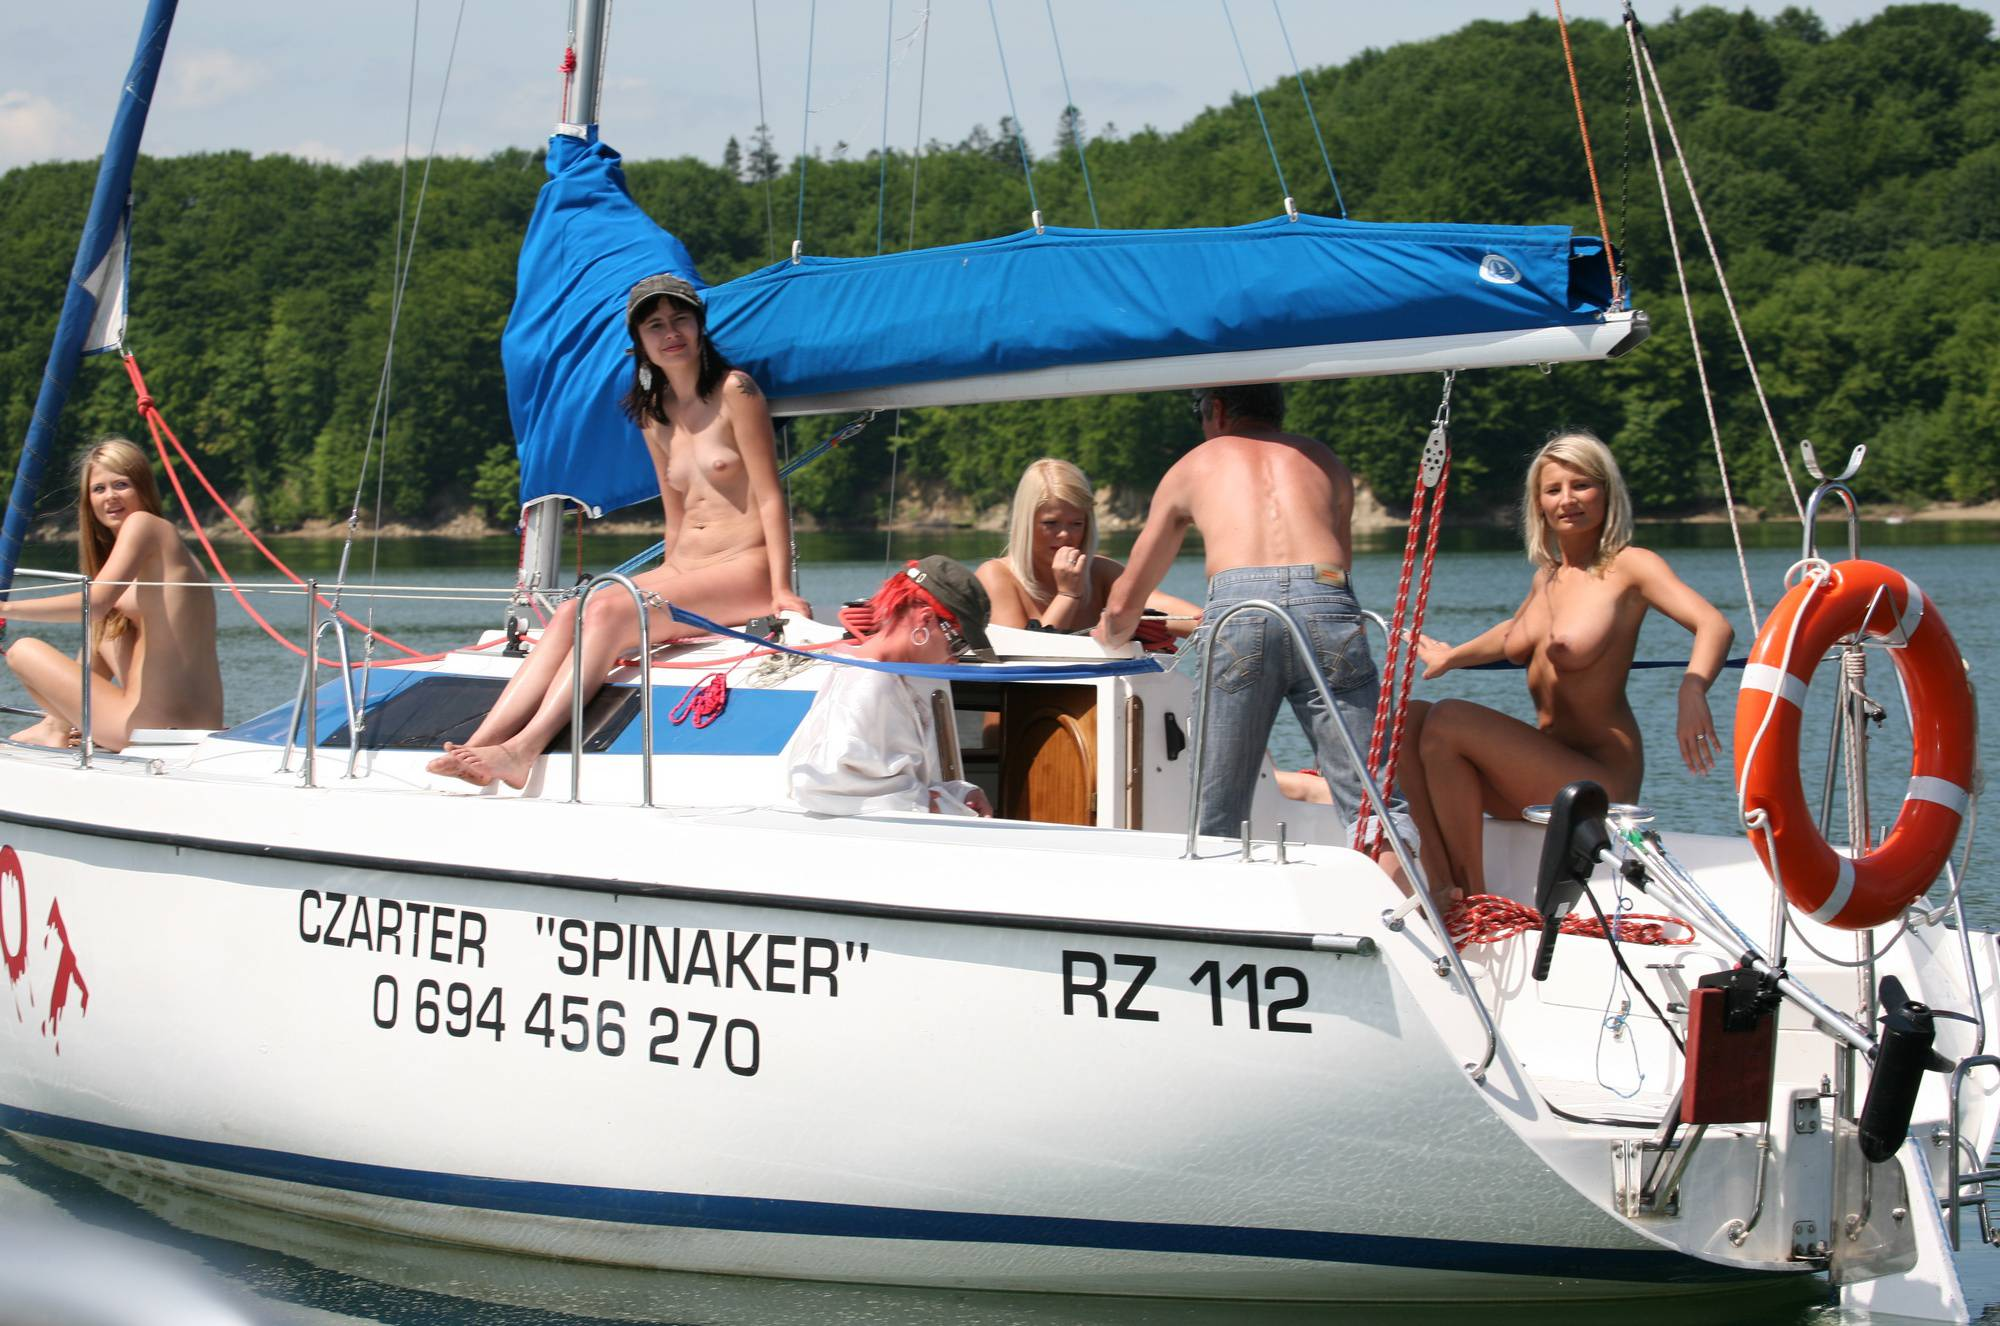 Nudist Pictures Seaworthy Piwot Yacht - 1